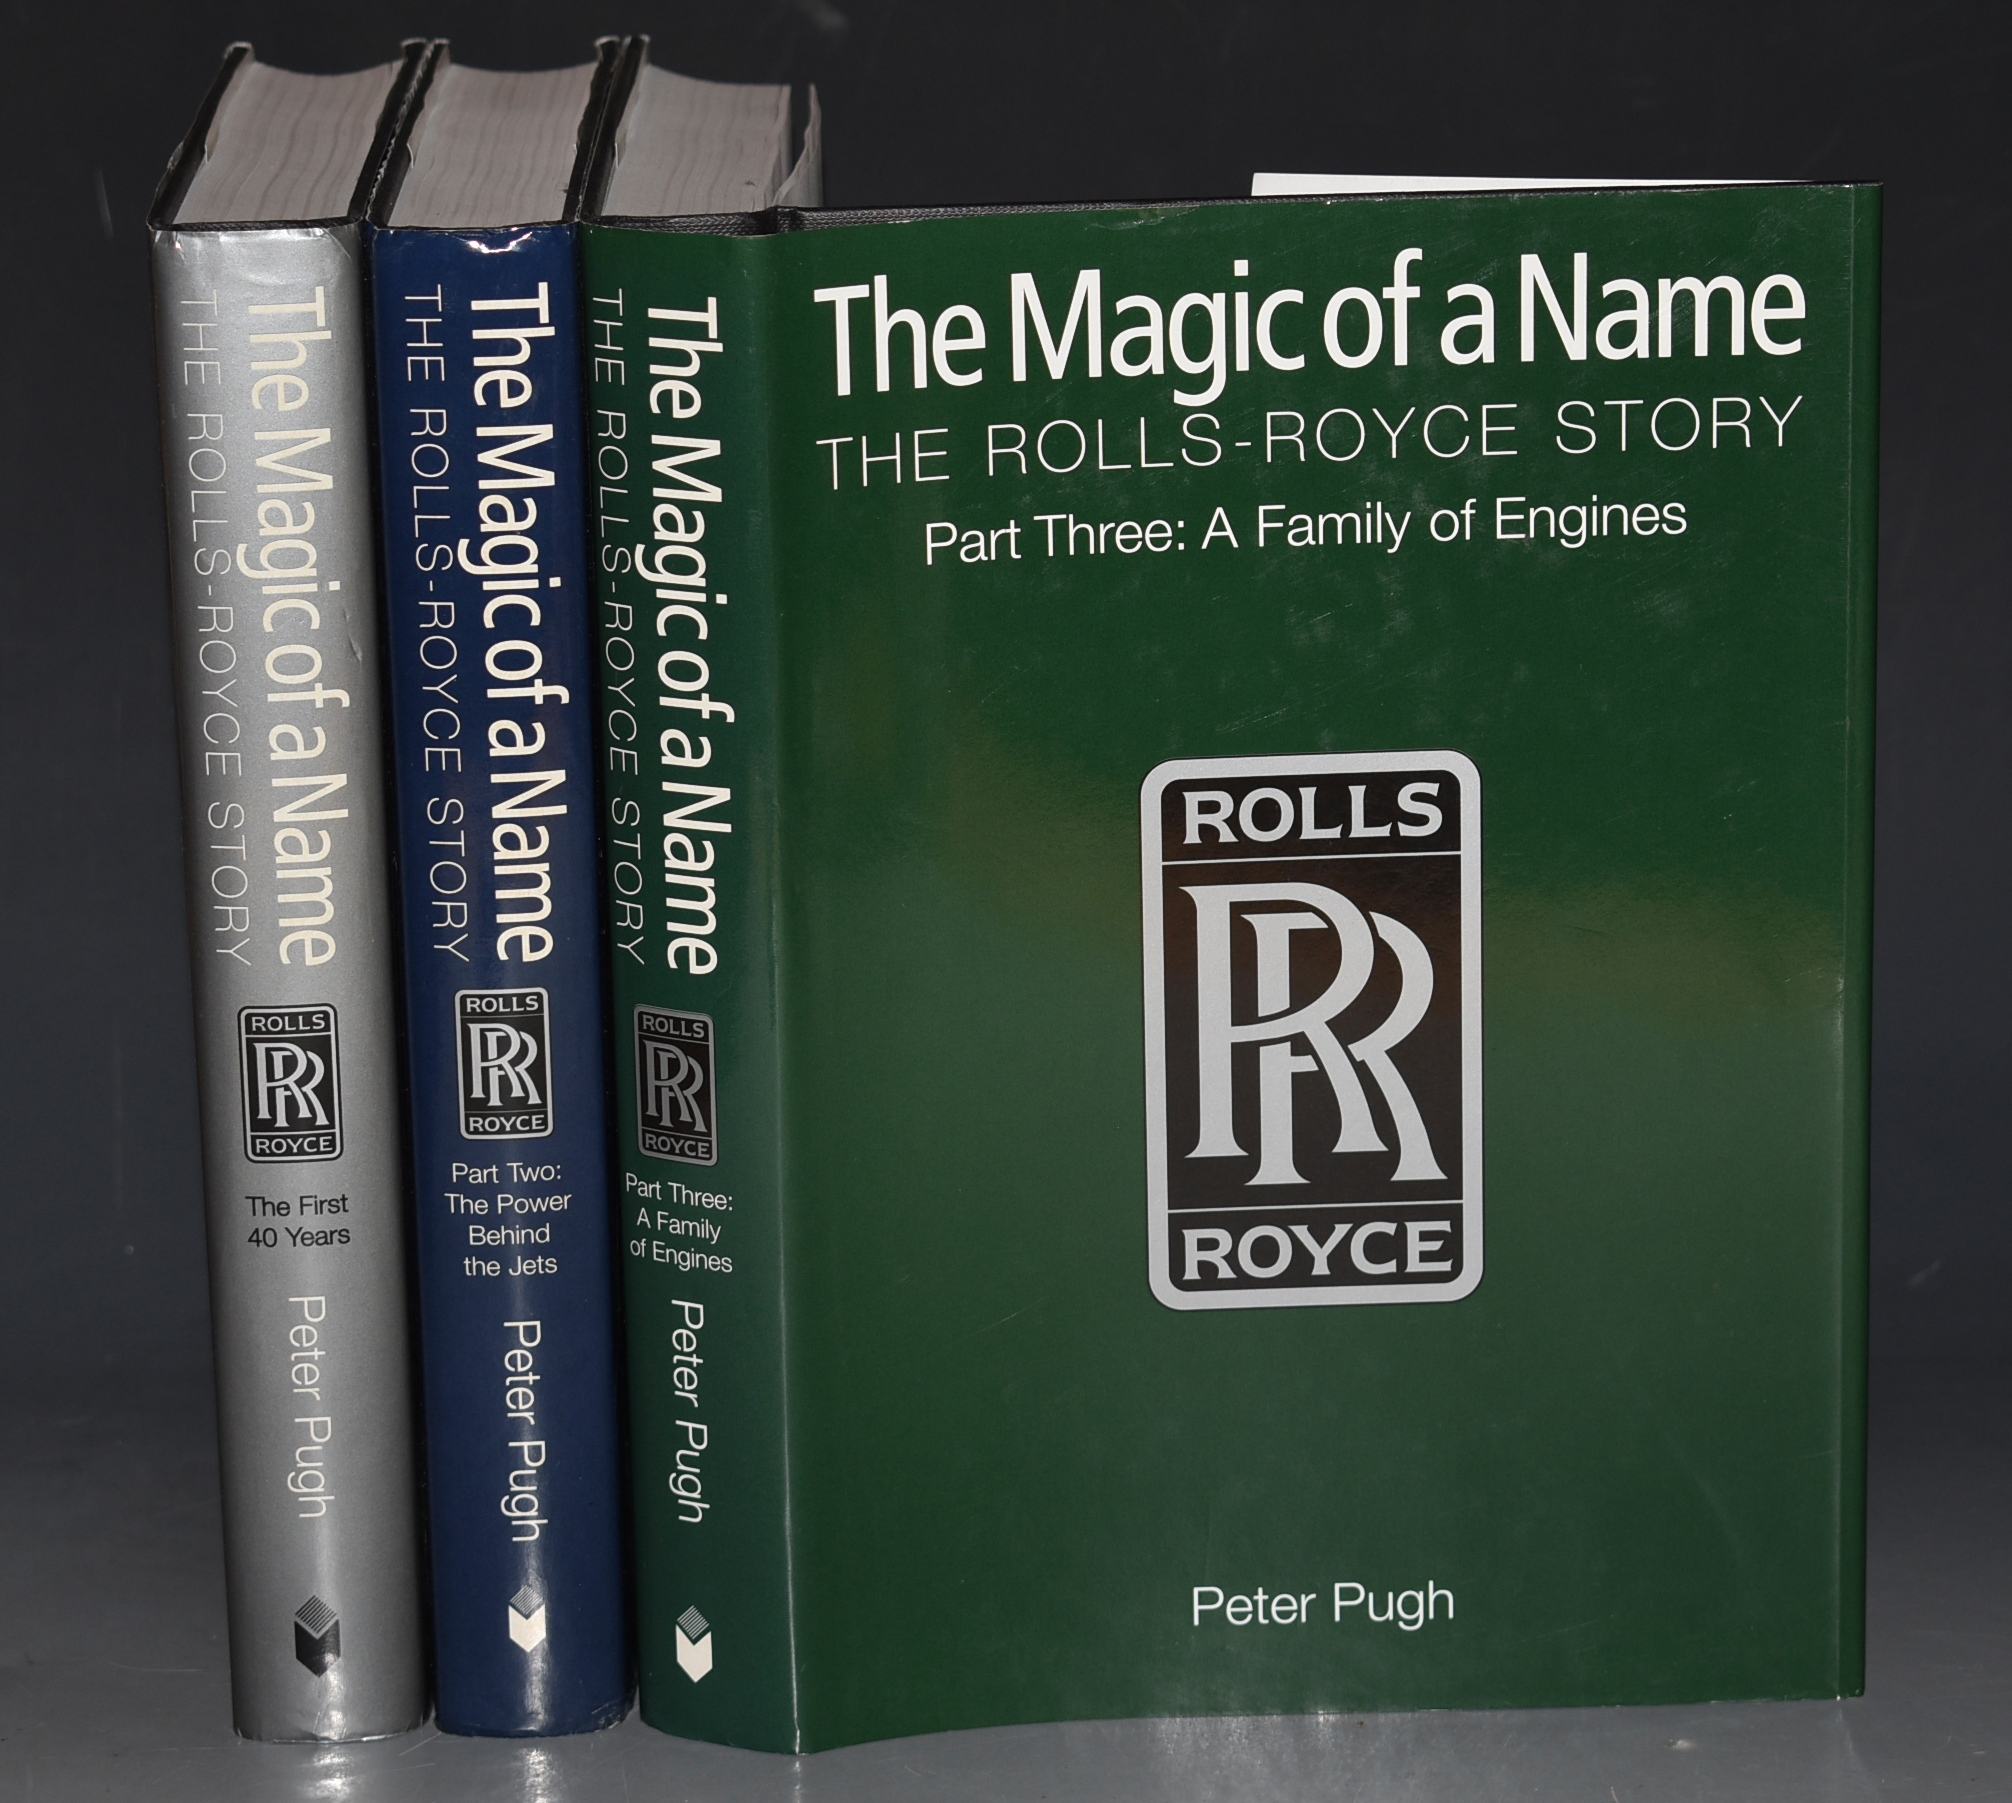 Image for The Magic of a Name, The Rolls-Royce Story In Three Volumes: The First 40 Years; The Power Behind The Jets; A Family of Engines.